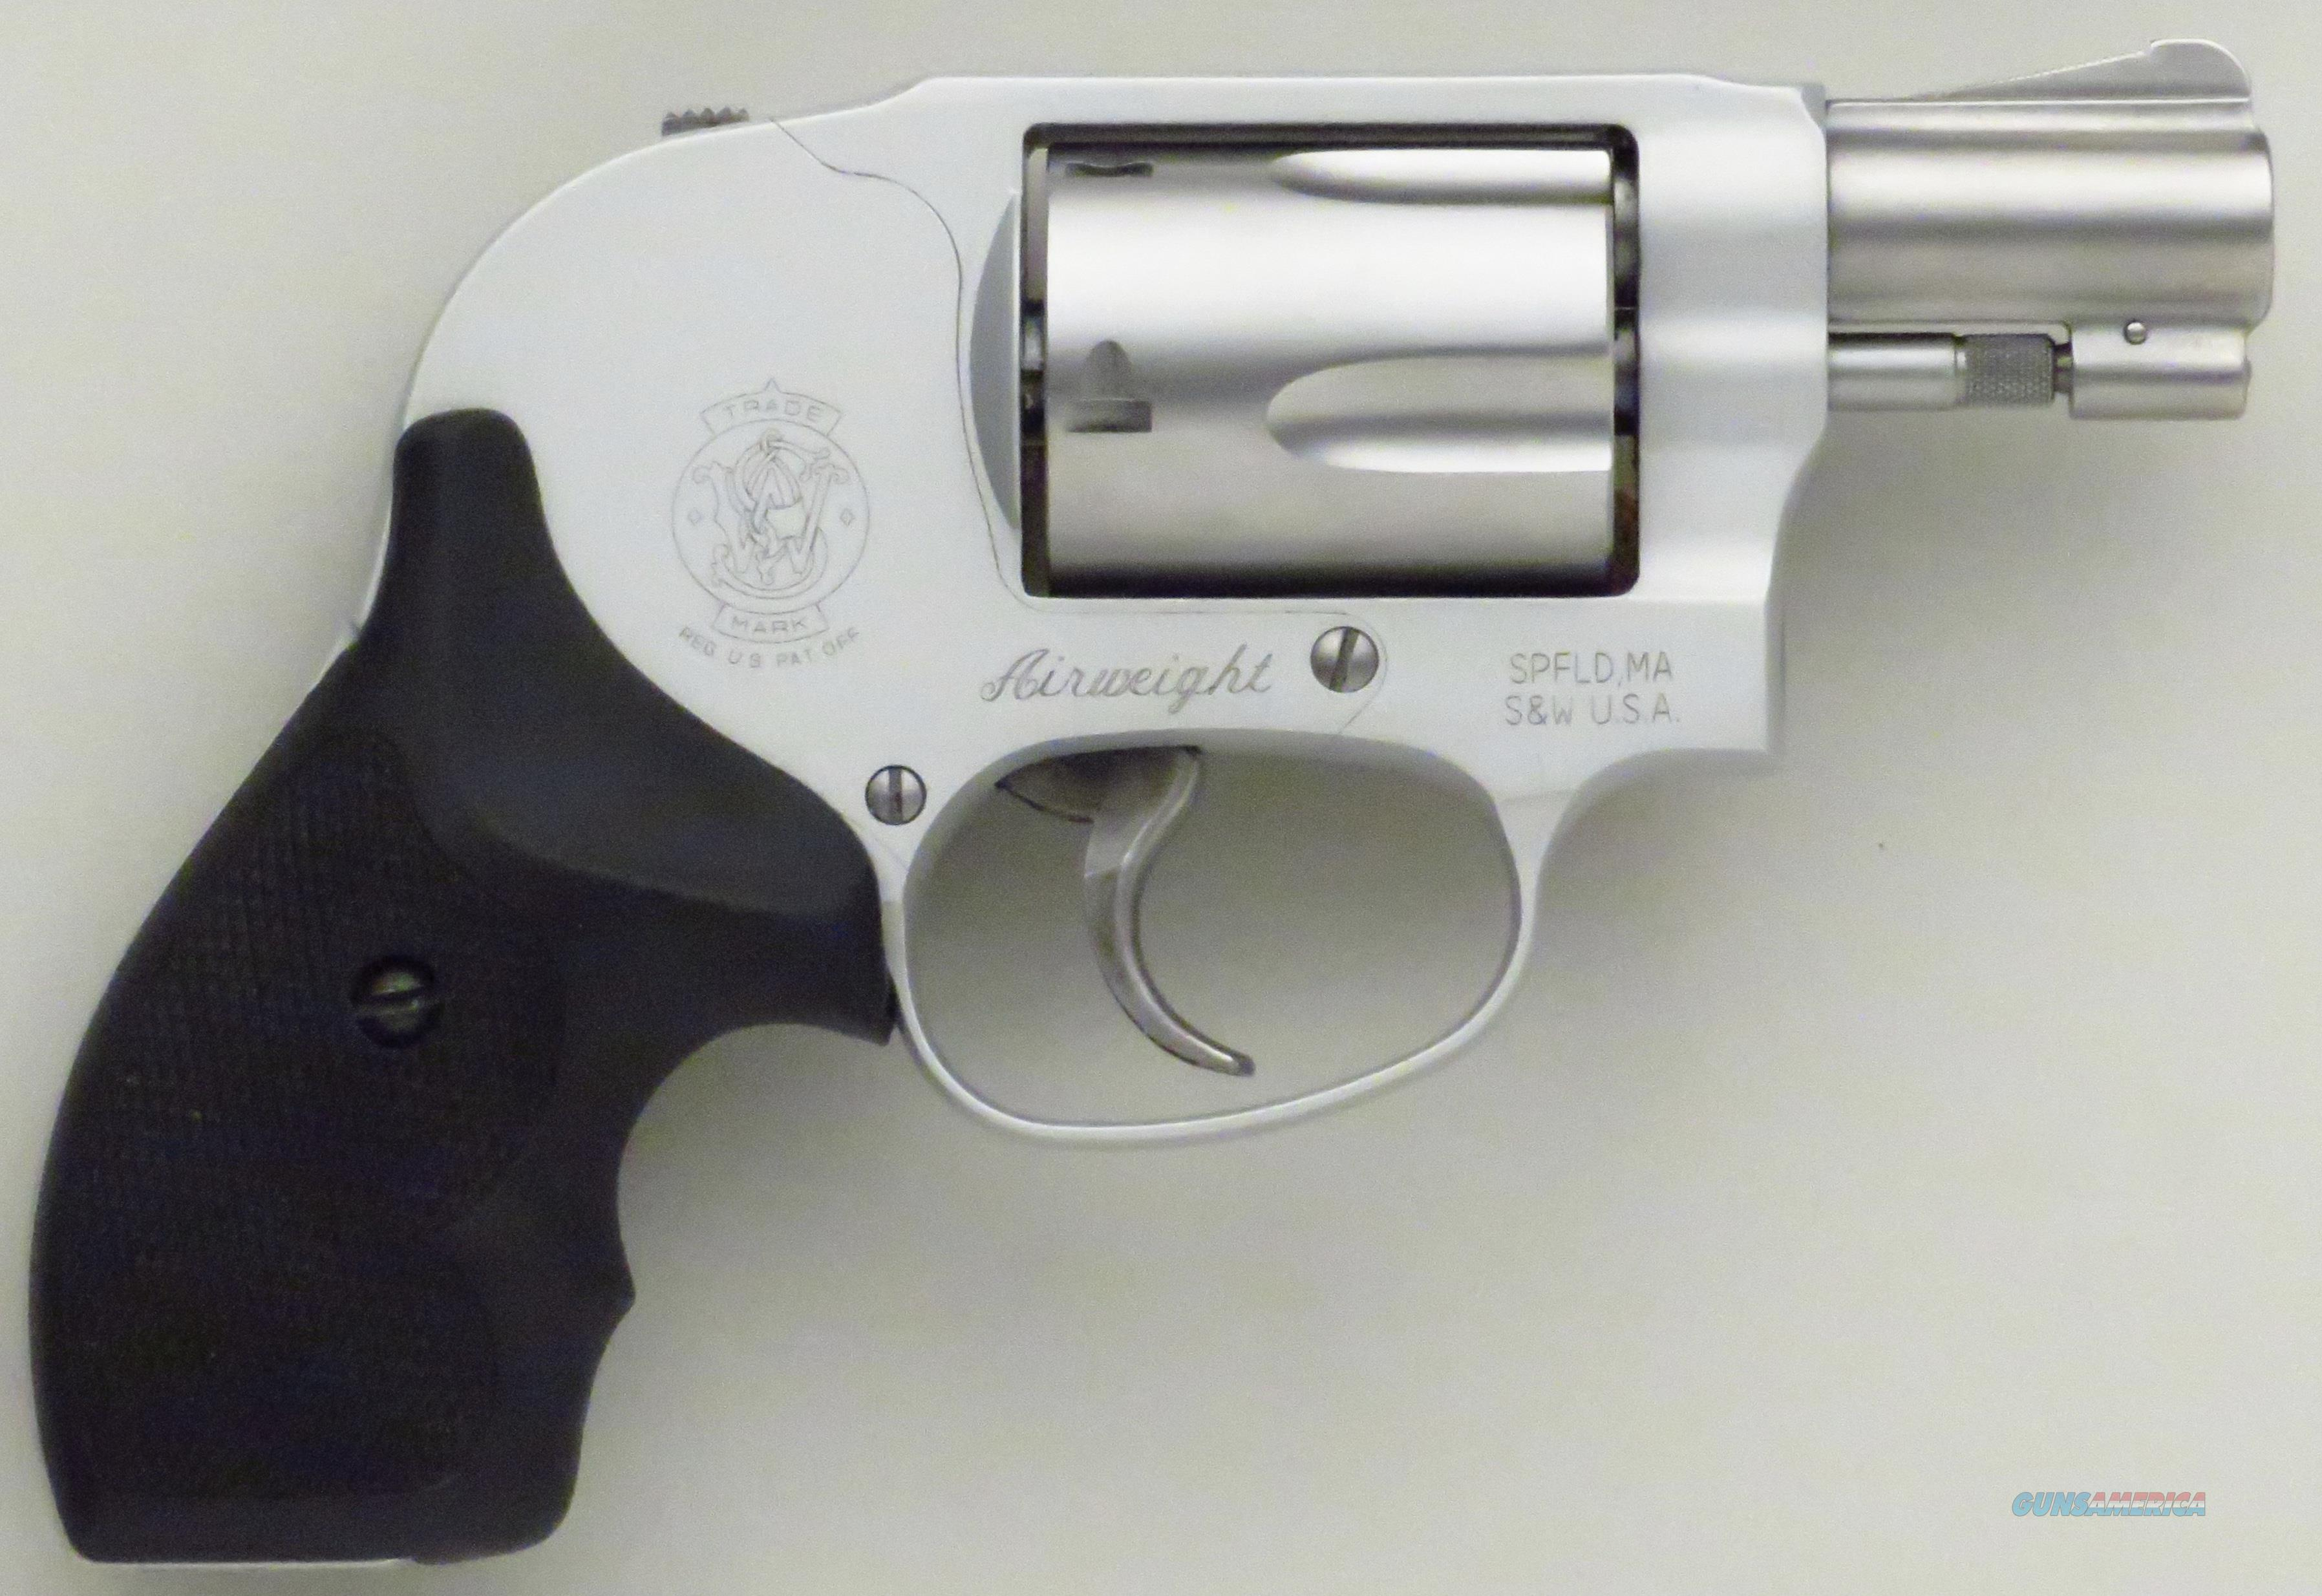 Smith & Wesson Airweight Model 638-3 .38 Special +P, 2008, stainless, like new, case, cartridge  Guns > Pistols > Smith & Wesson Revolvers > Pocket Pistols